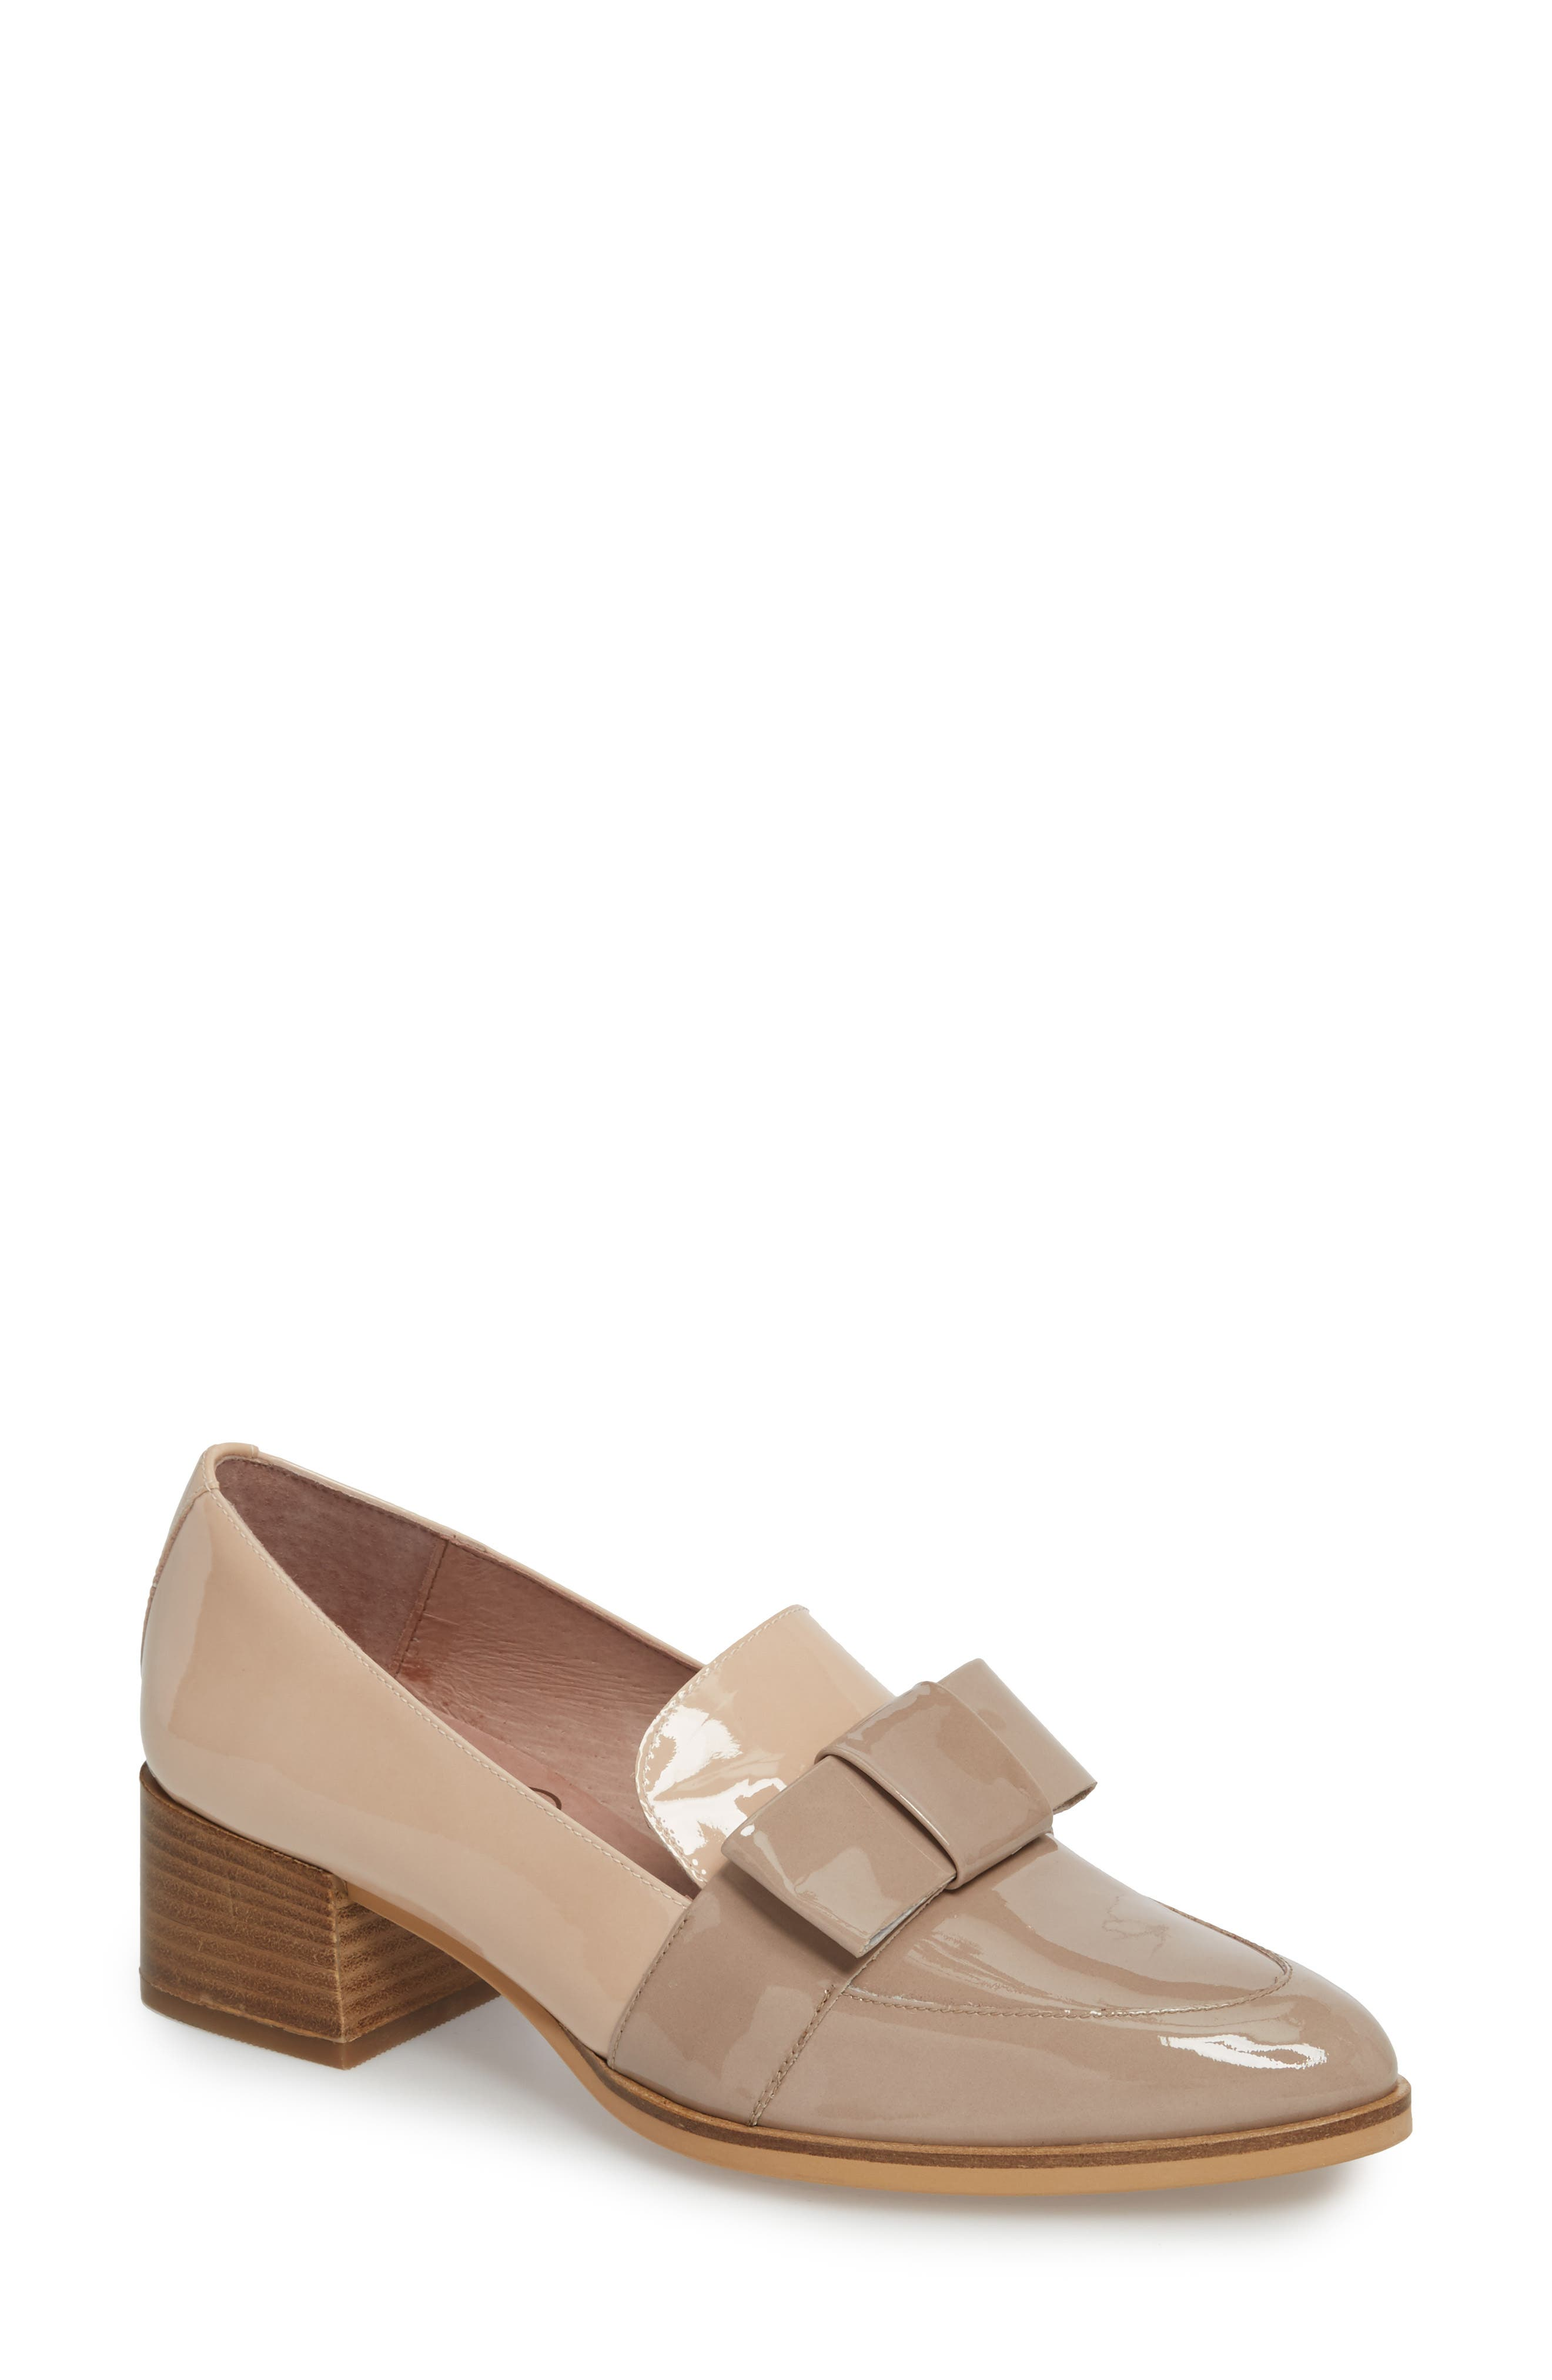 Block Heel Loafer Pump,                         Main,                         color, TAUPE/ PALO PATENT LEATHER